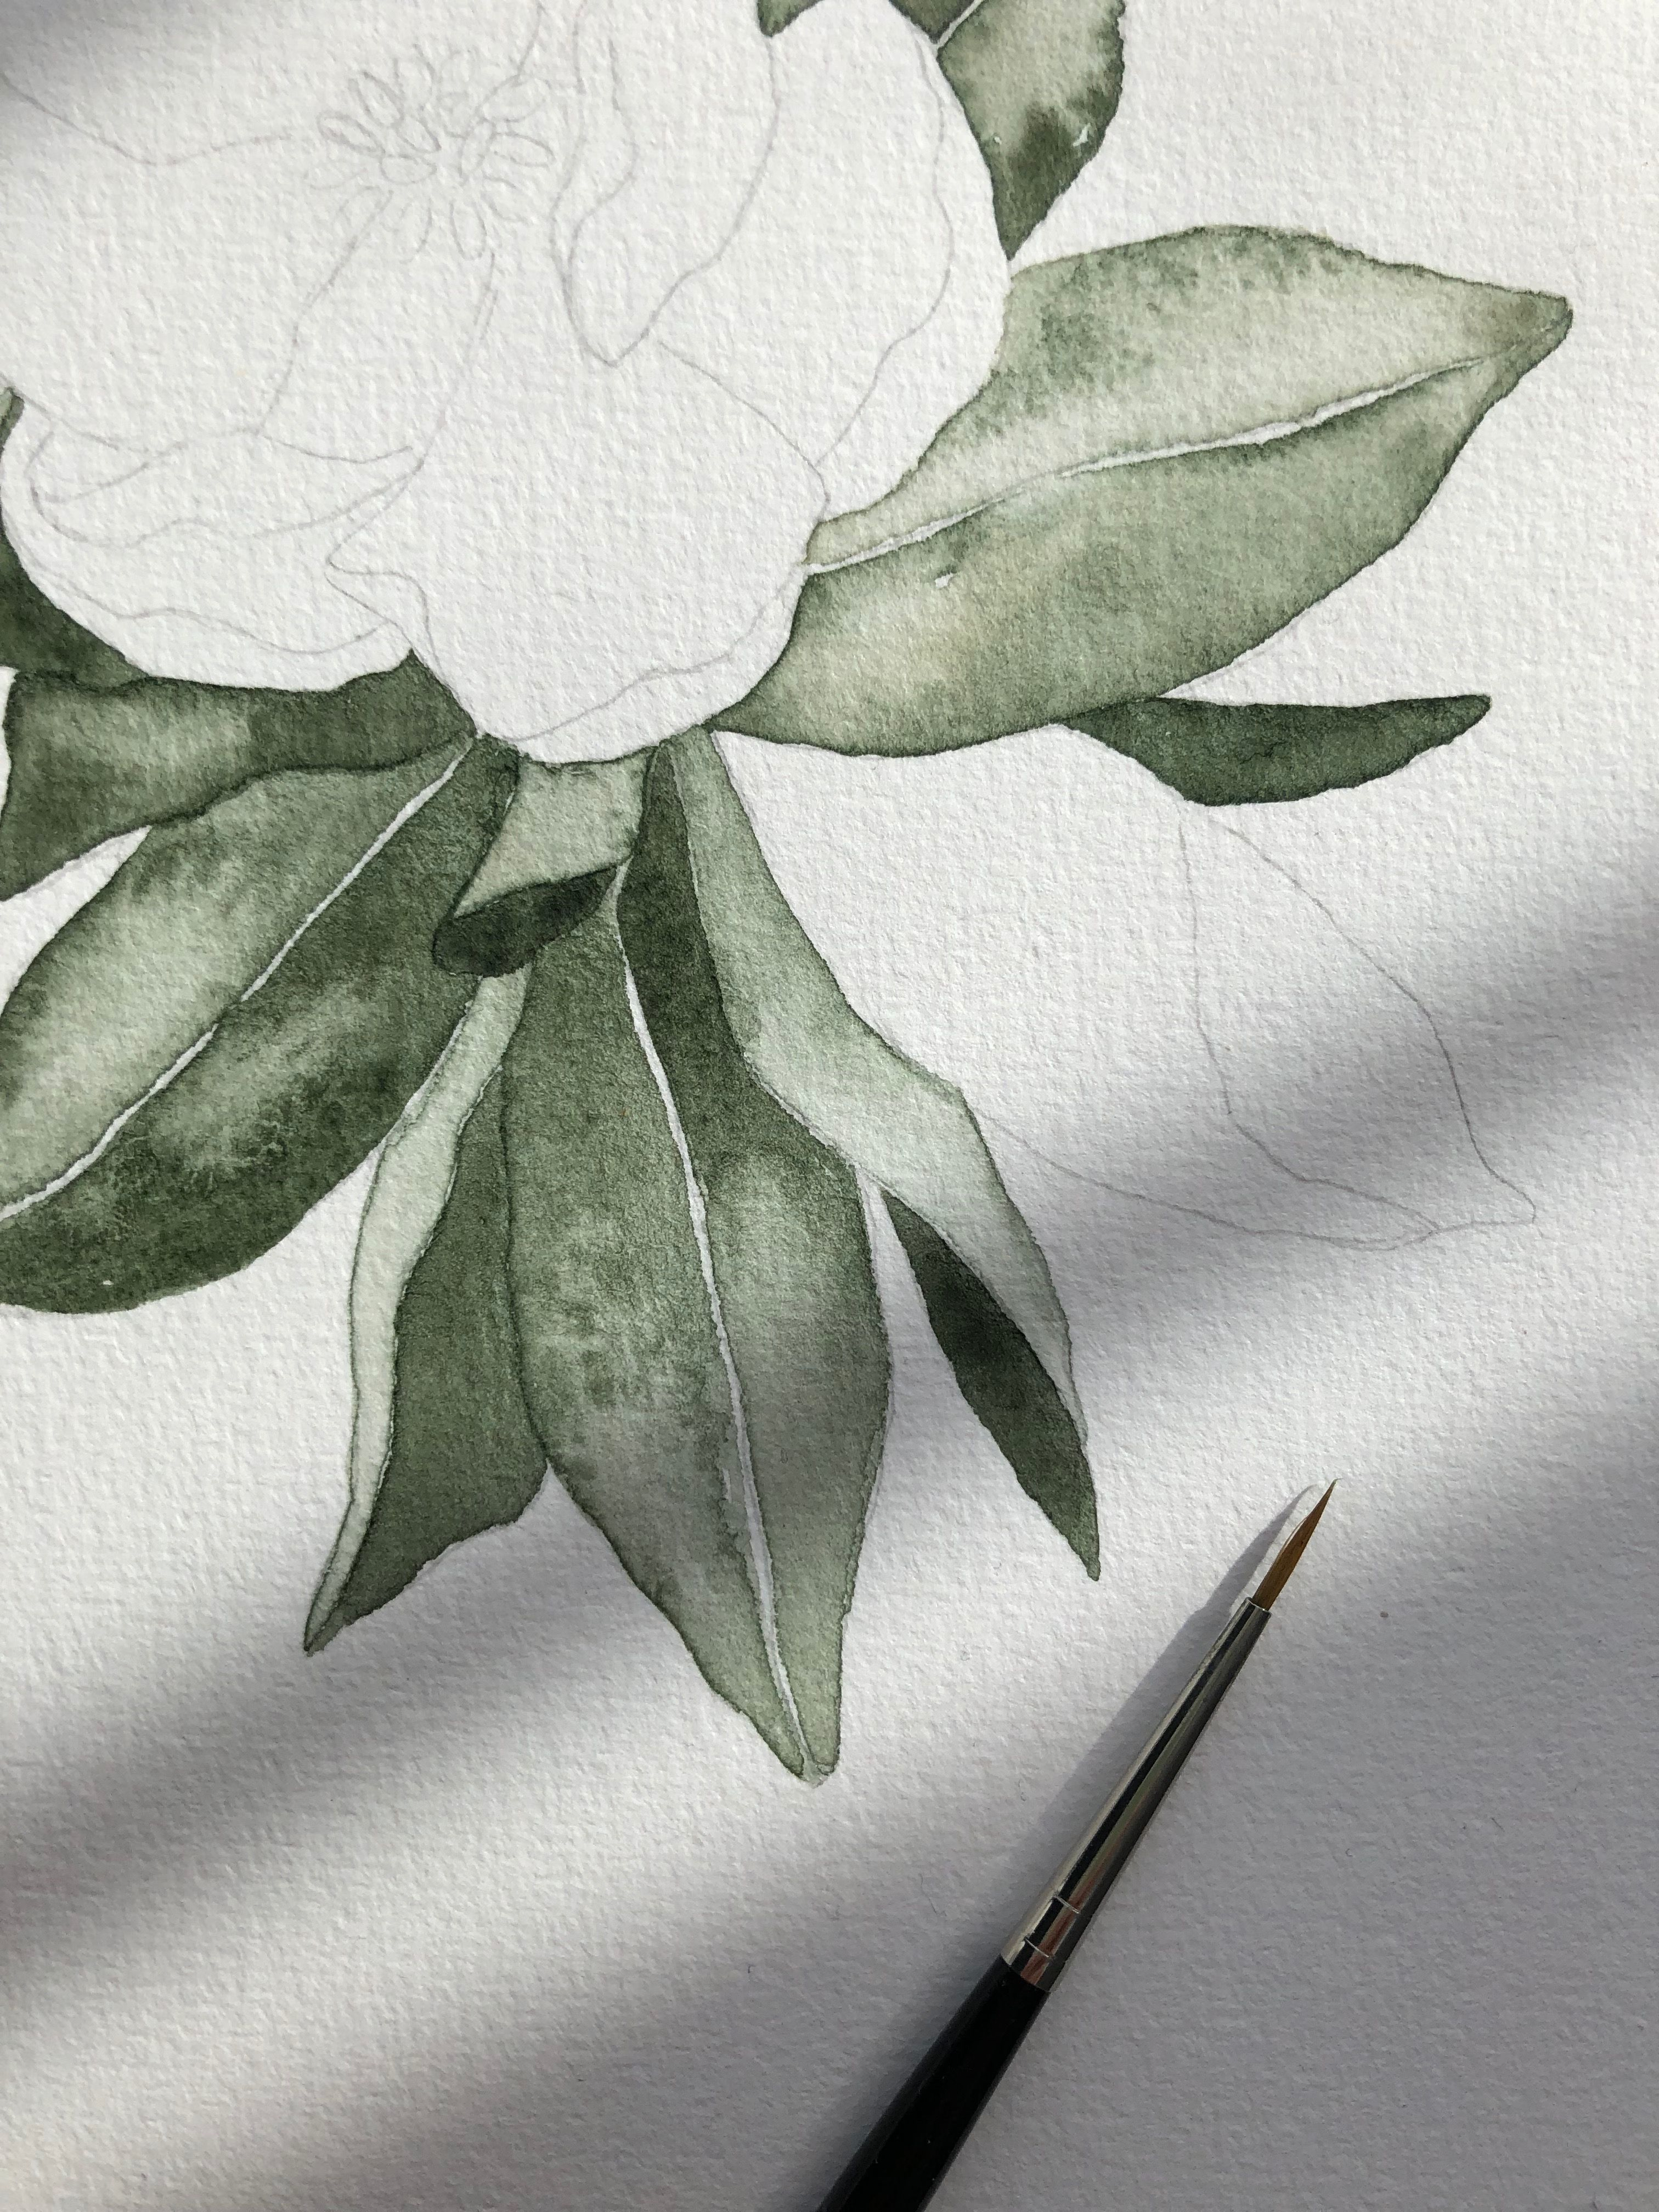 Work In Progress Of These Watercolor Florals I Painted The Leaves